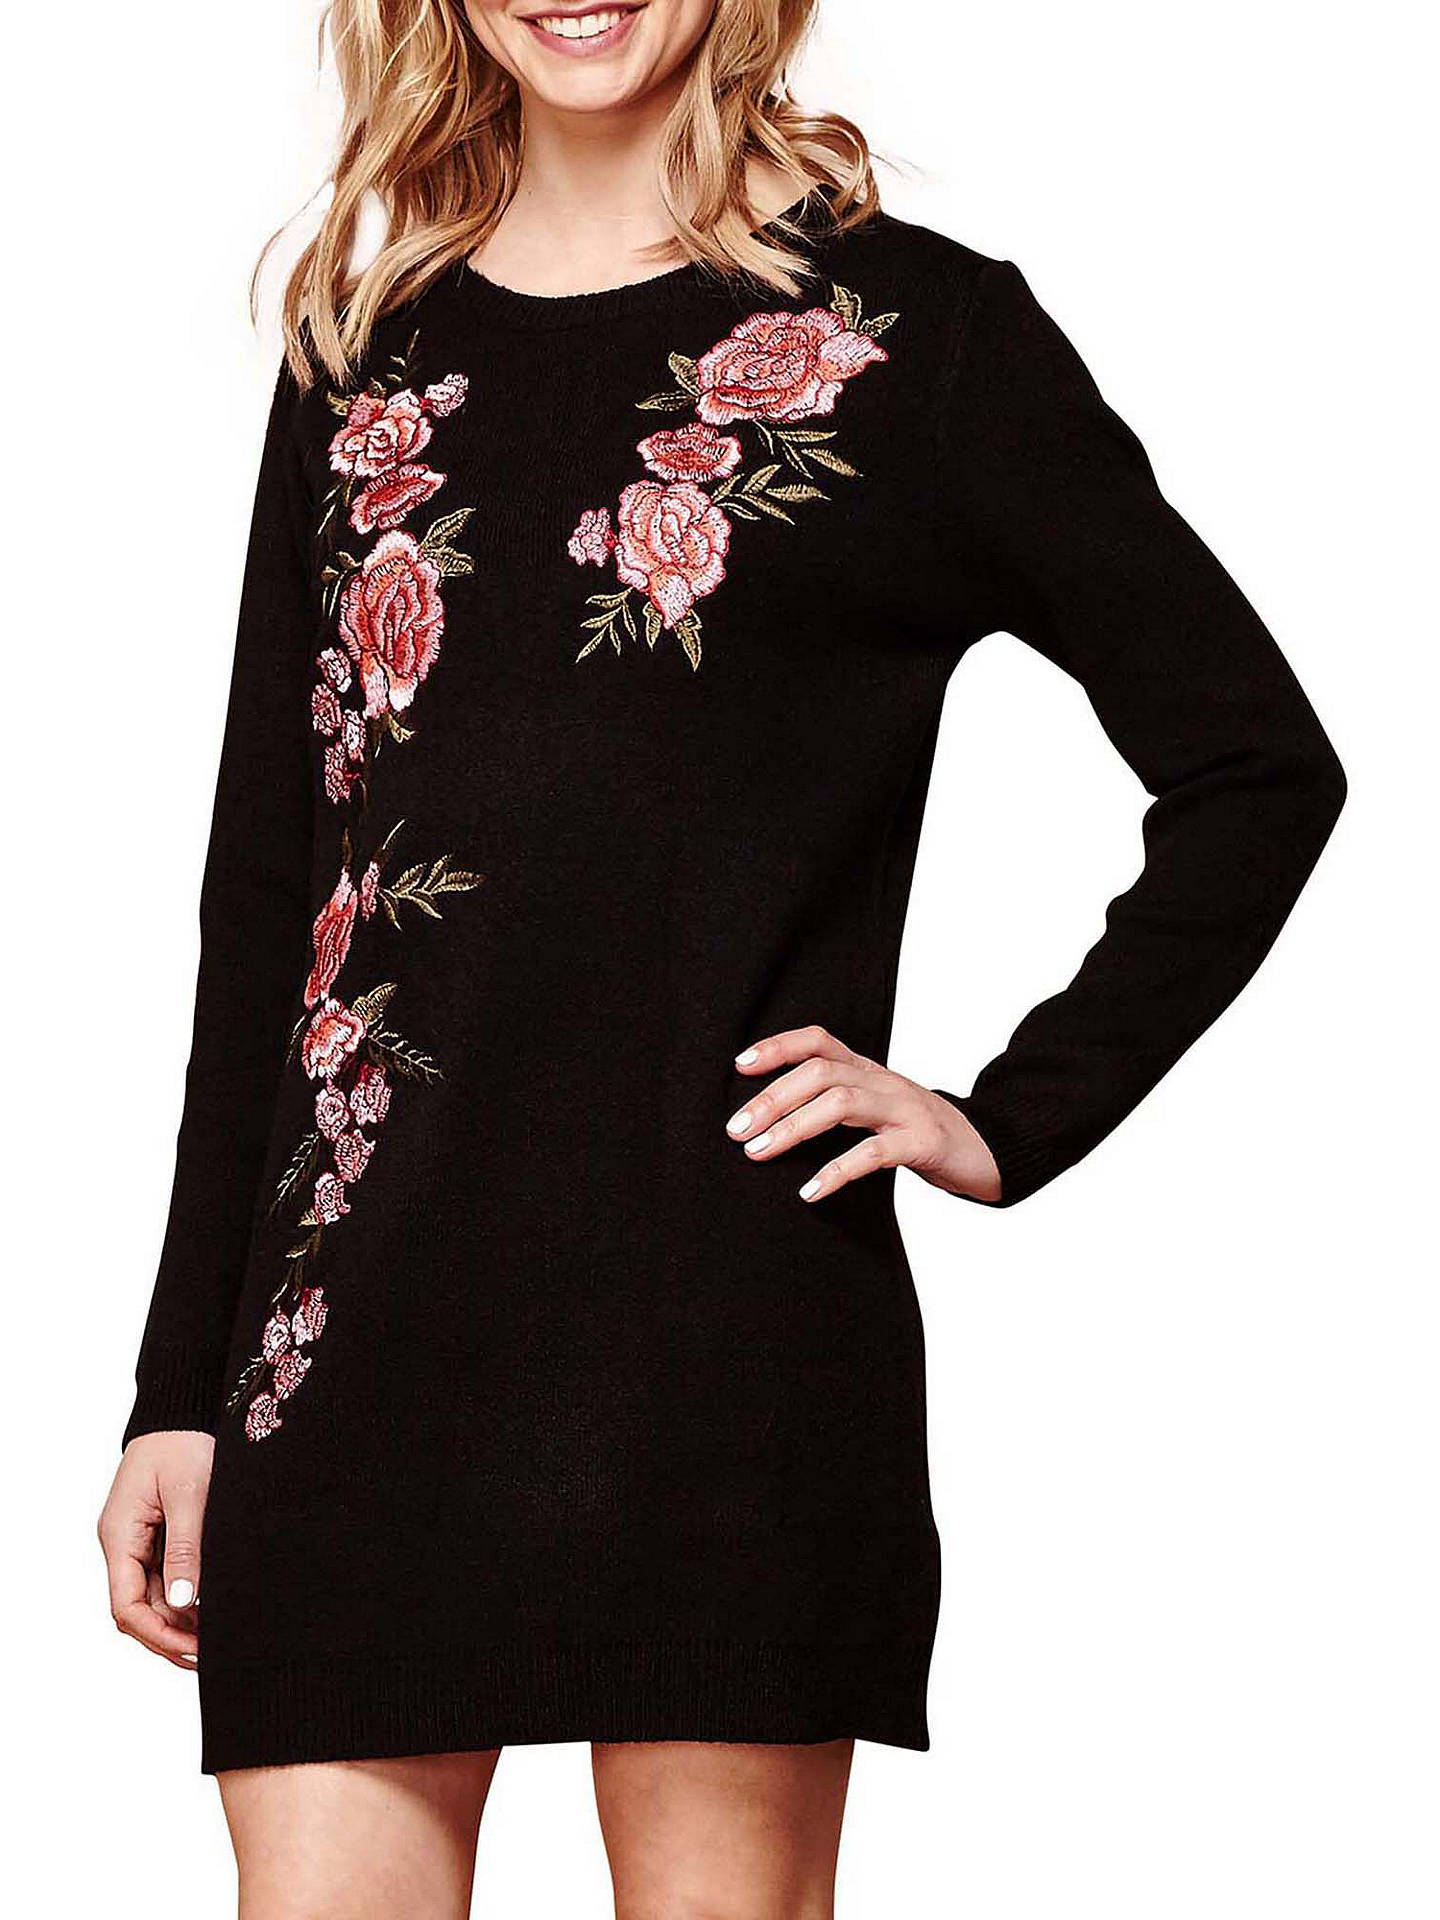 92d12b2a377 Buy Yumi Embroidered Jumper Dress